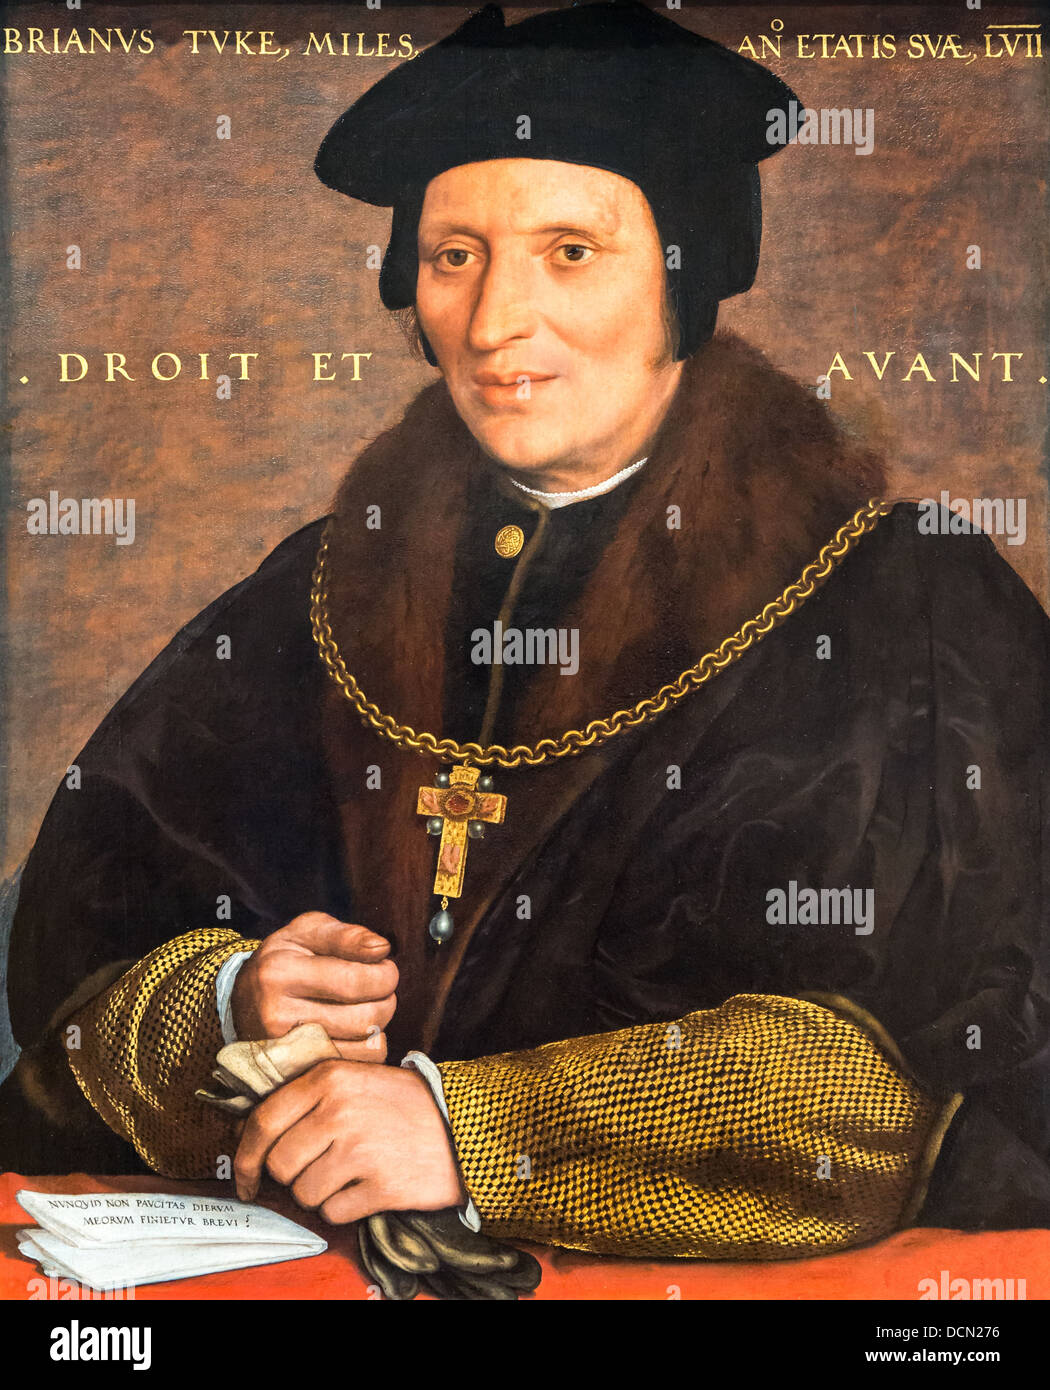 16th century  -  Sir Brian Tuke, 1532 - Hans Holbein the Young Philippe Sauvan-Magnet / Active Museum - Stock Image